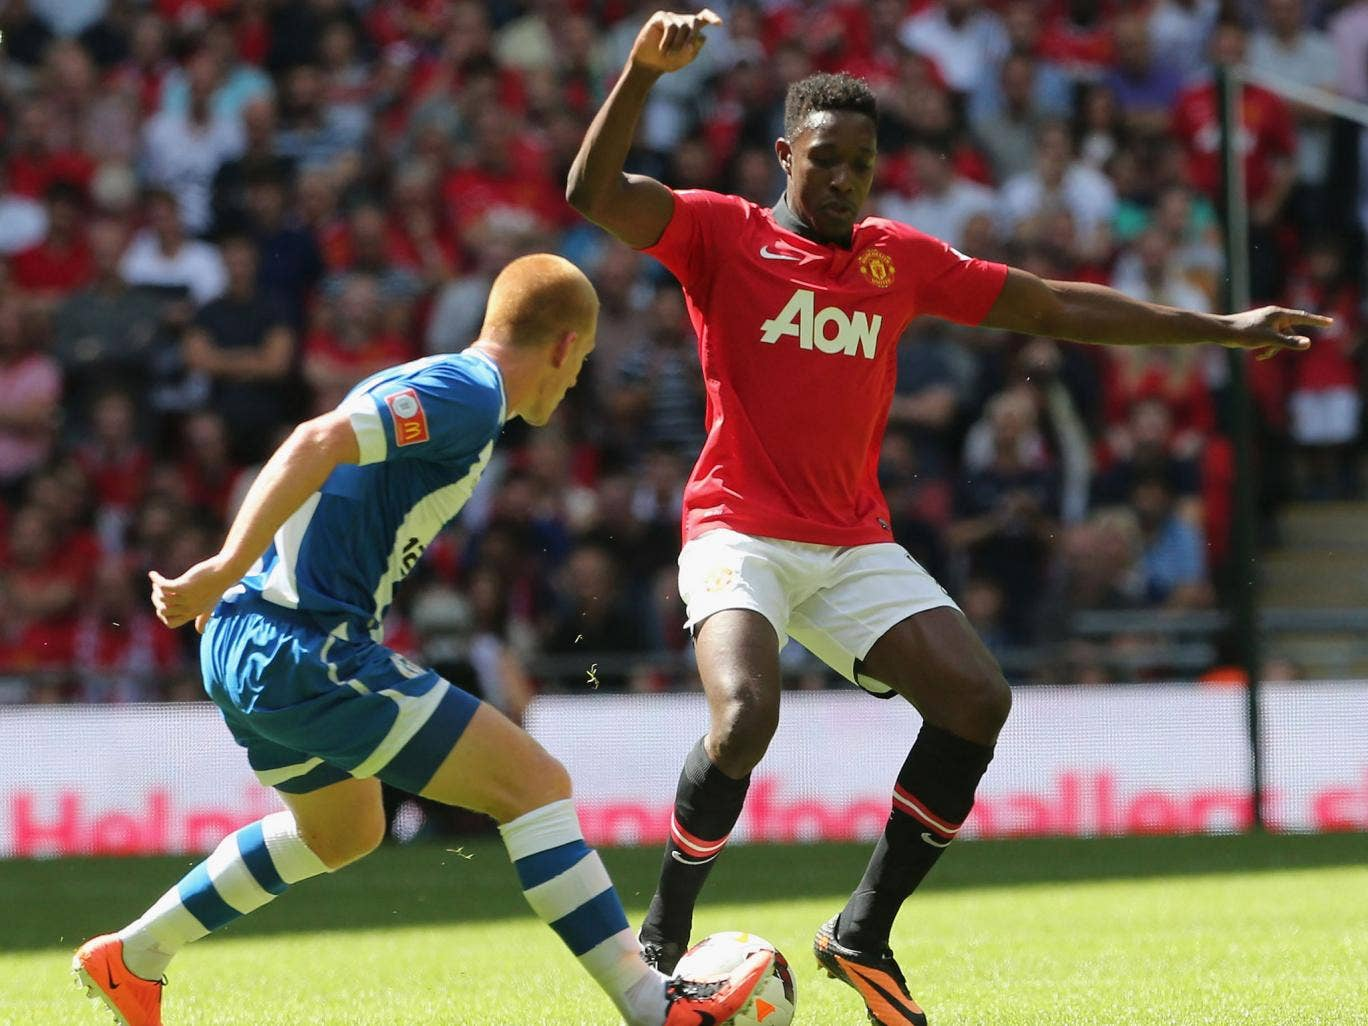 <p>BEN WATSON:</p> Returning to the scene of his historic strike, FA Cup final hero Watson was outshone by another former Palace man in Zaha. 6